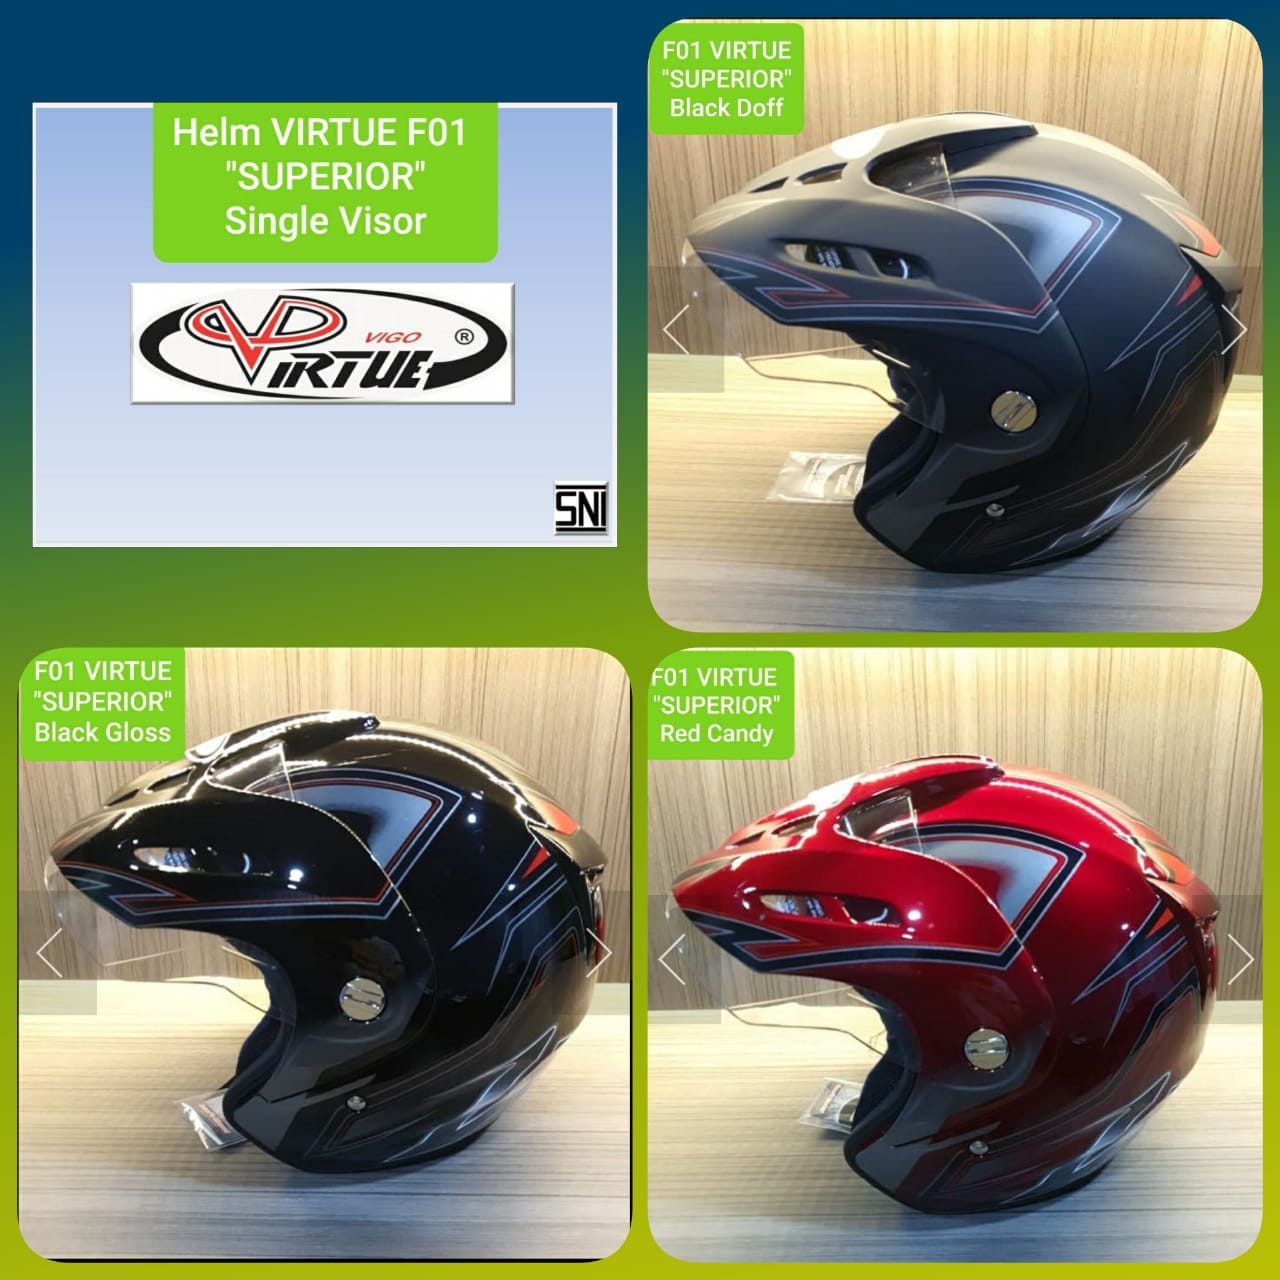 TYPE F01 Virtue Superior Single Visor